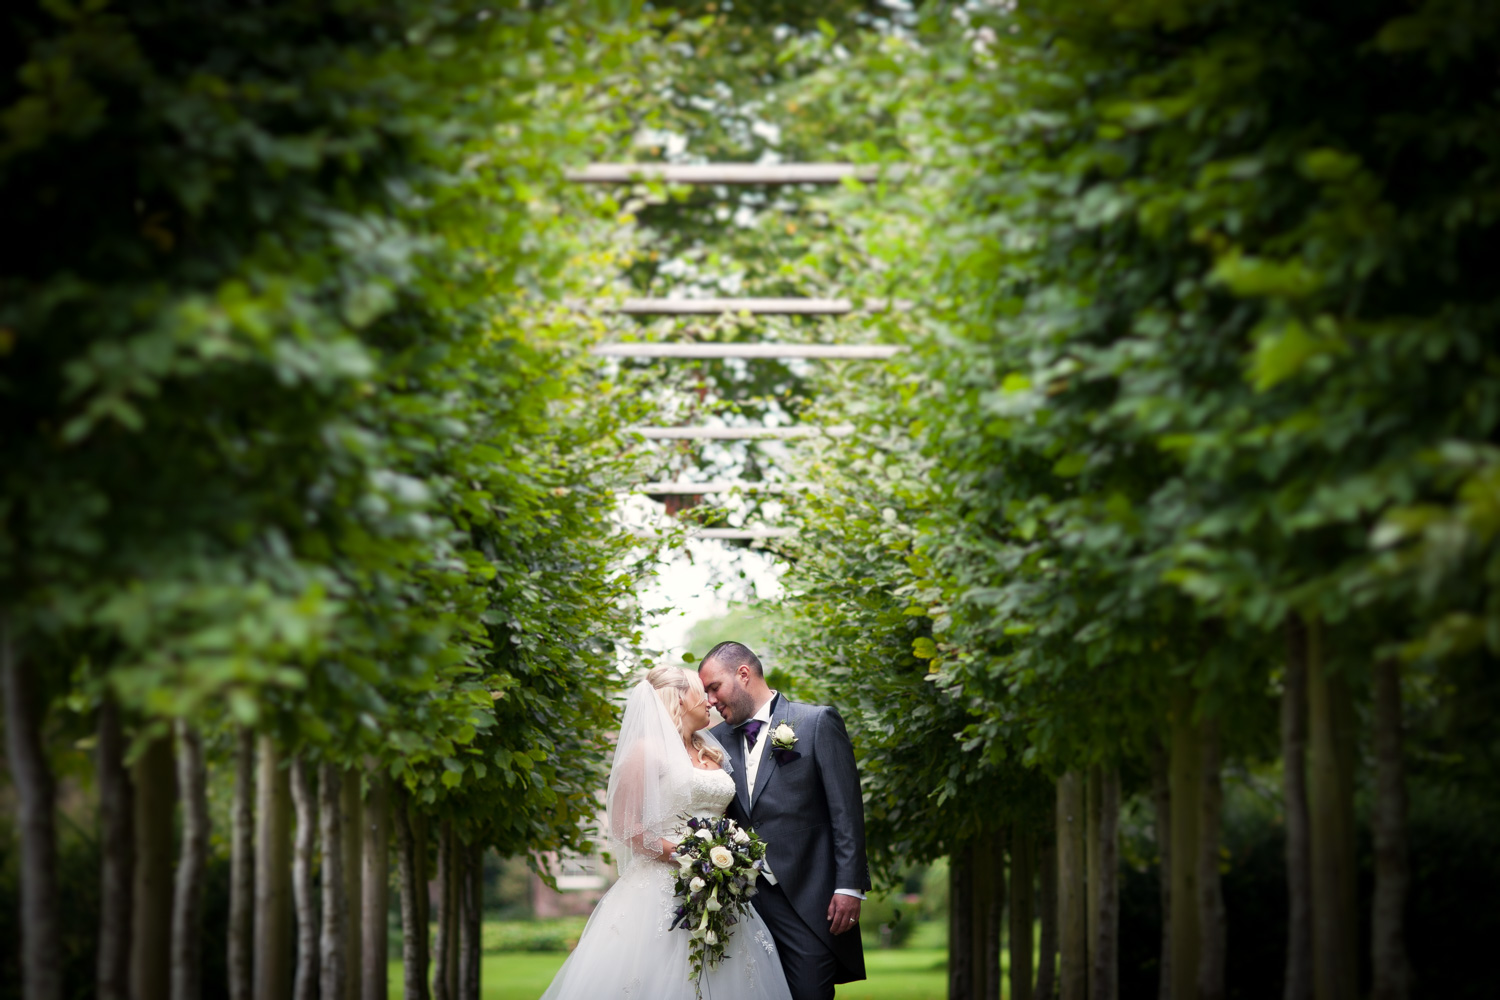 Mark_Barnes_Bristol-wedding-photography-aldwick-court-farm-and-vineyard-wedding-Photography-33.jpg